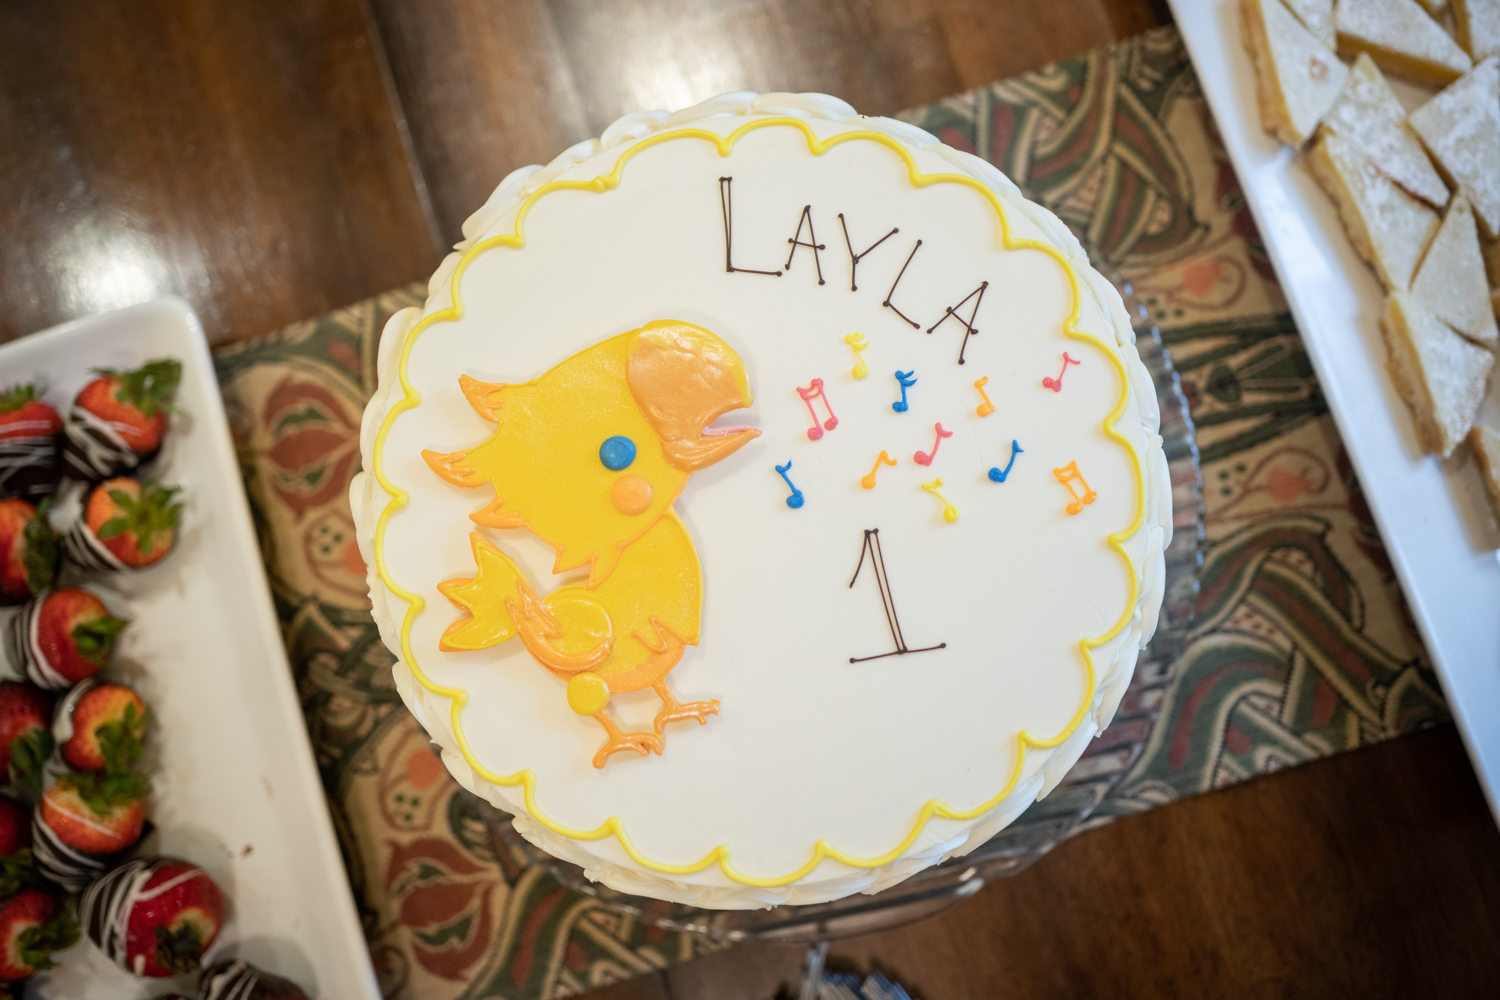 Layla's American first birthday cake.